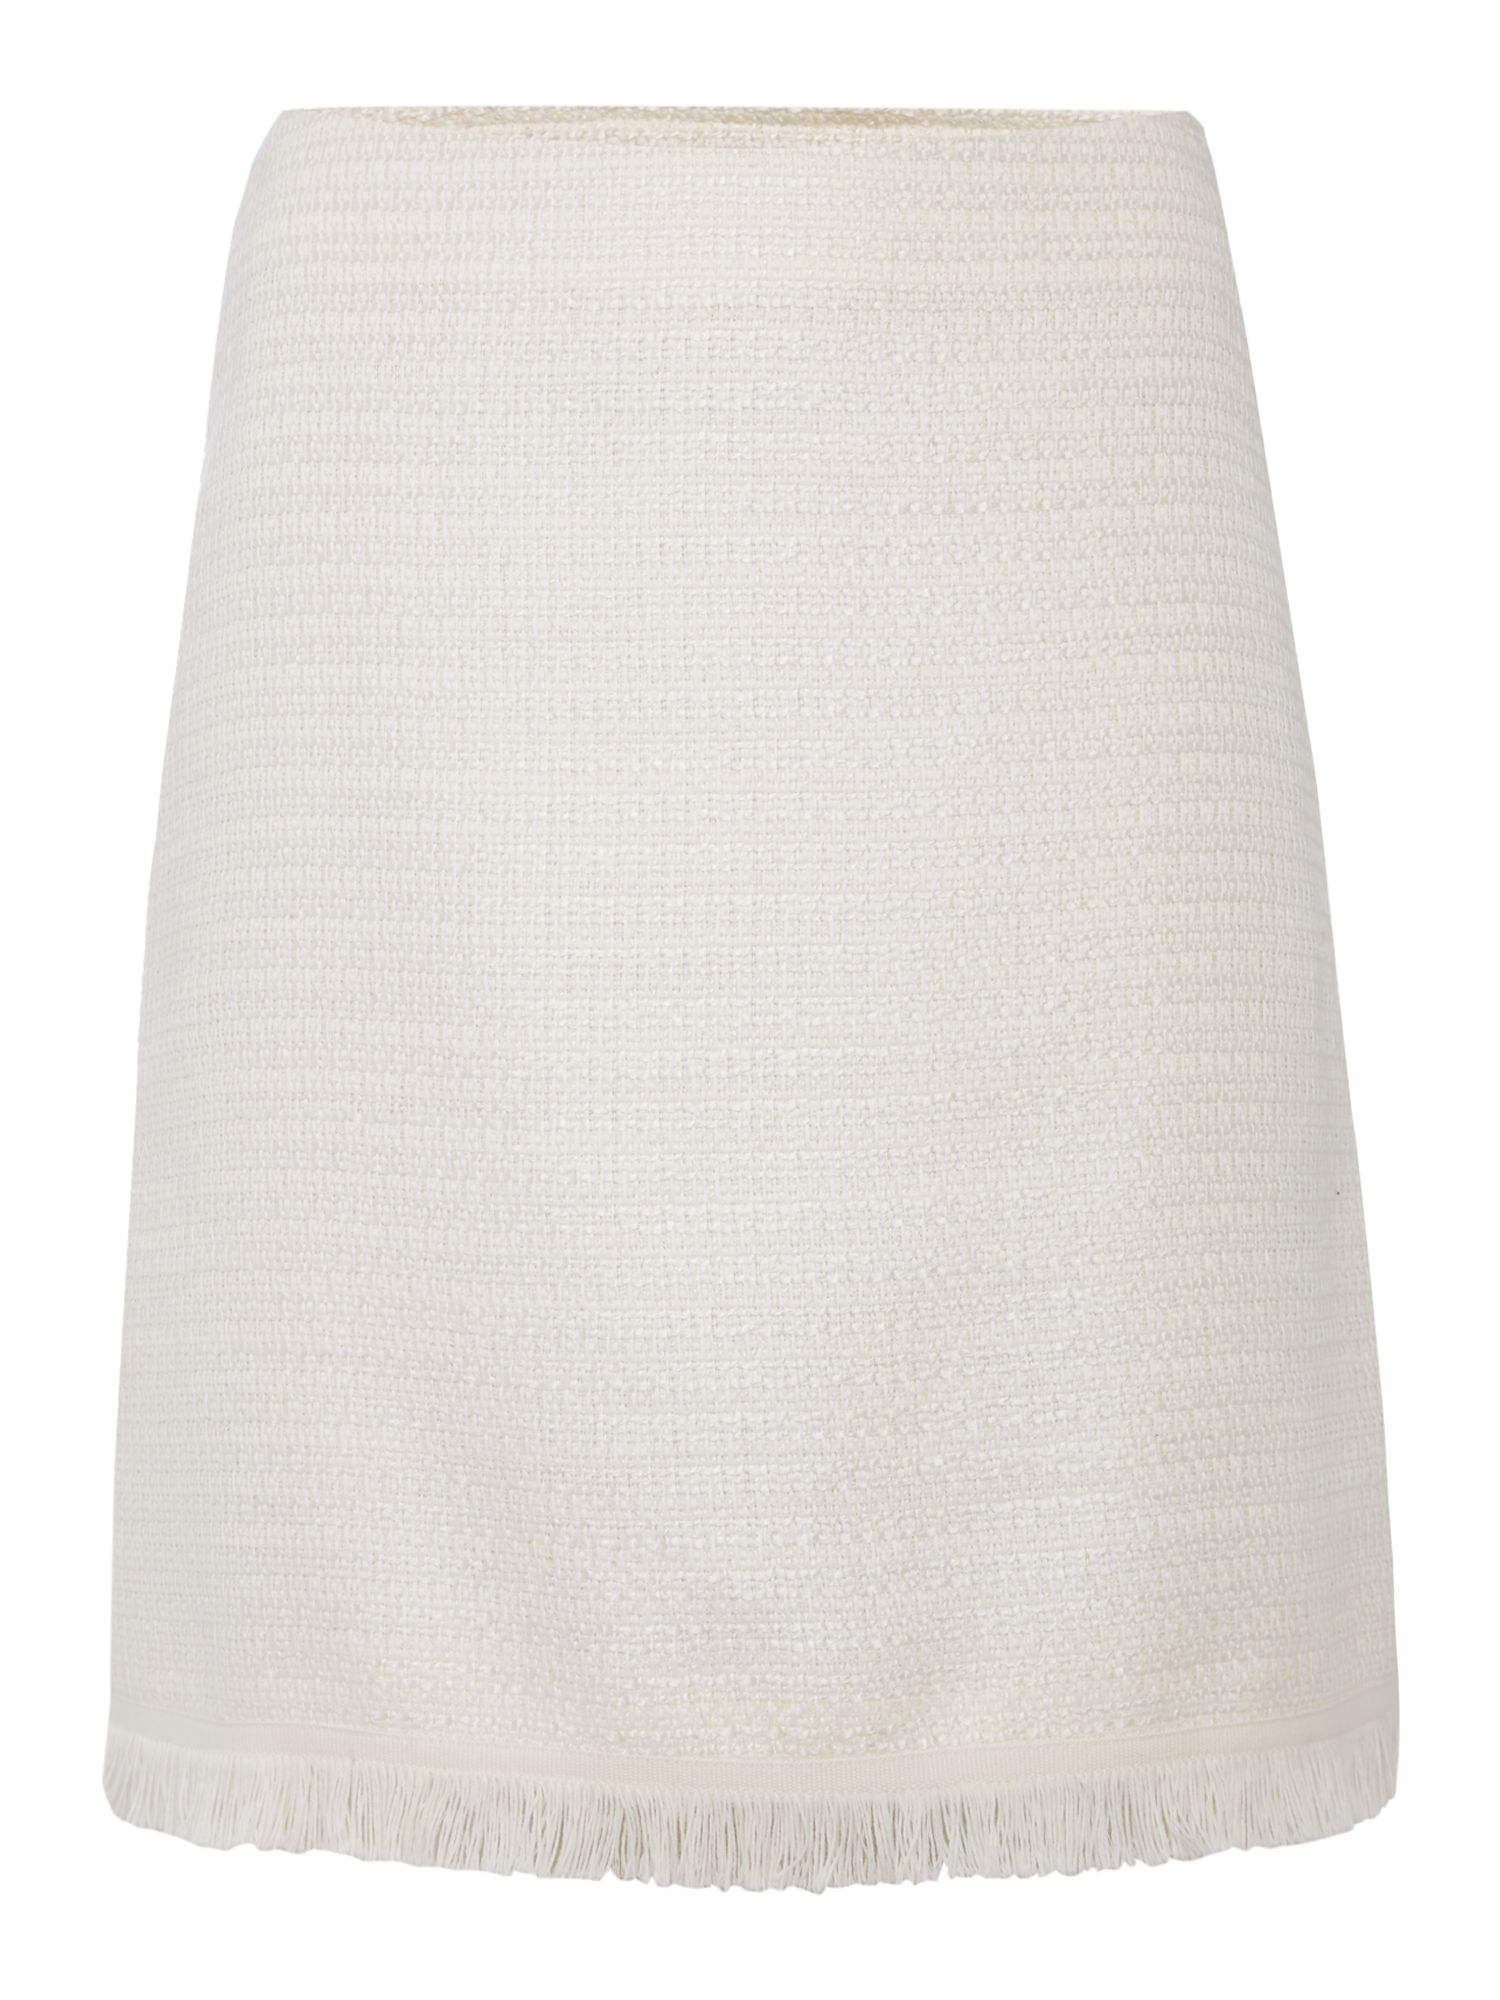 Max Mara Studio VALERY mini boucle skirt with frayed hem, White